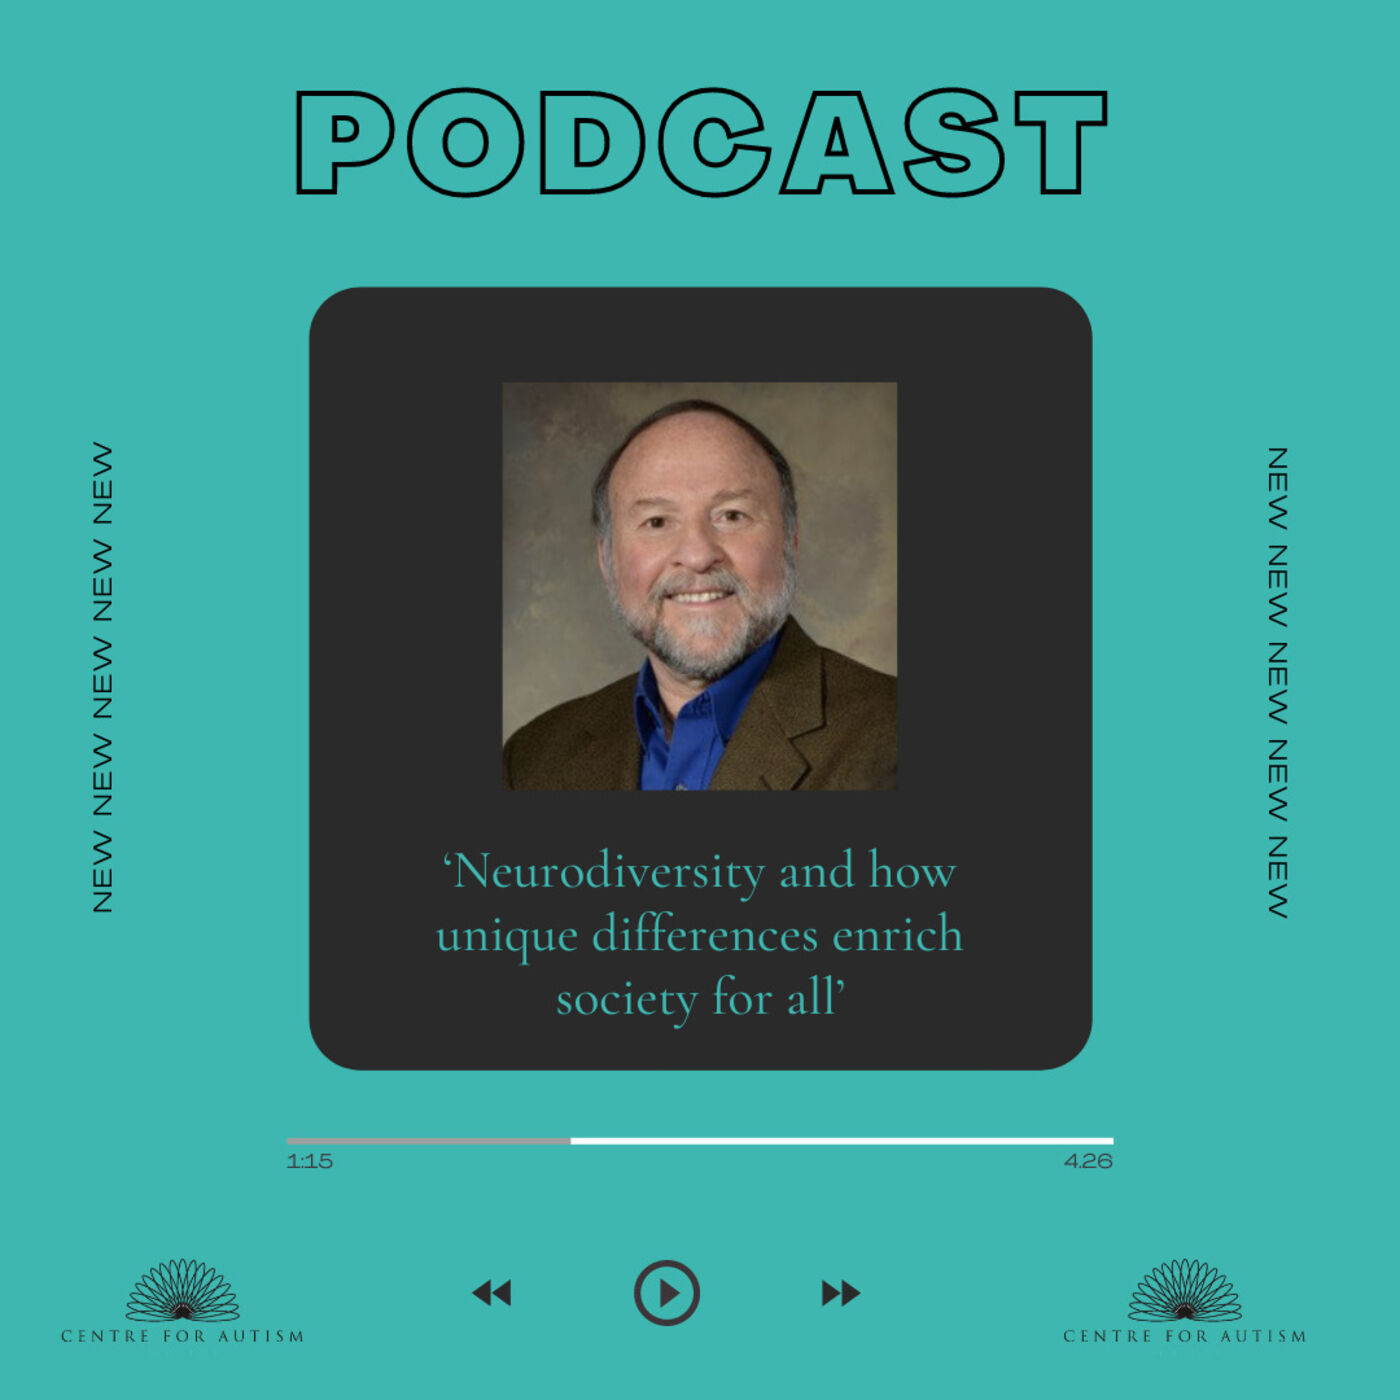 Neurodiversity and how unique differences enrich society for all